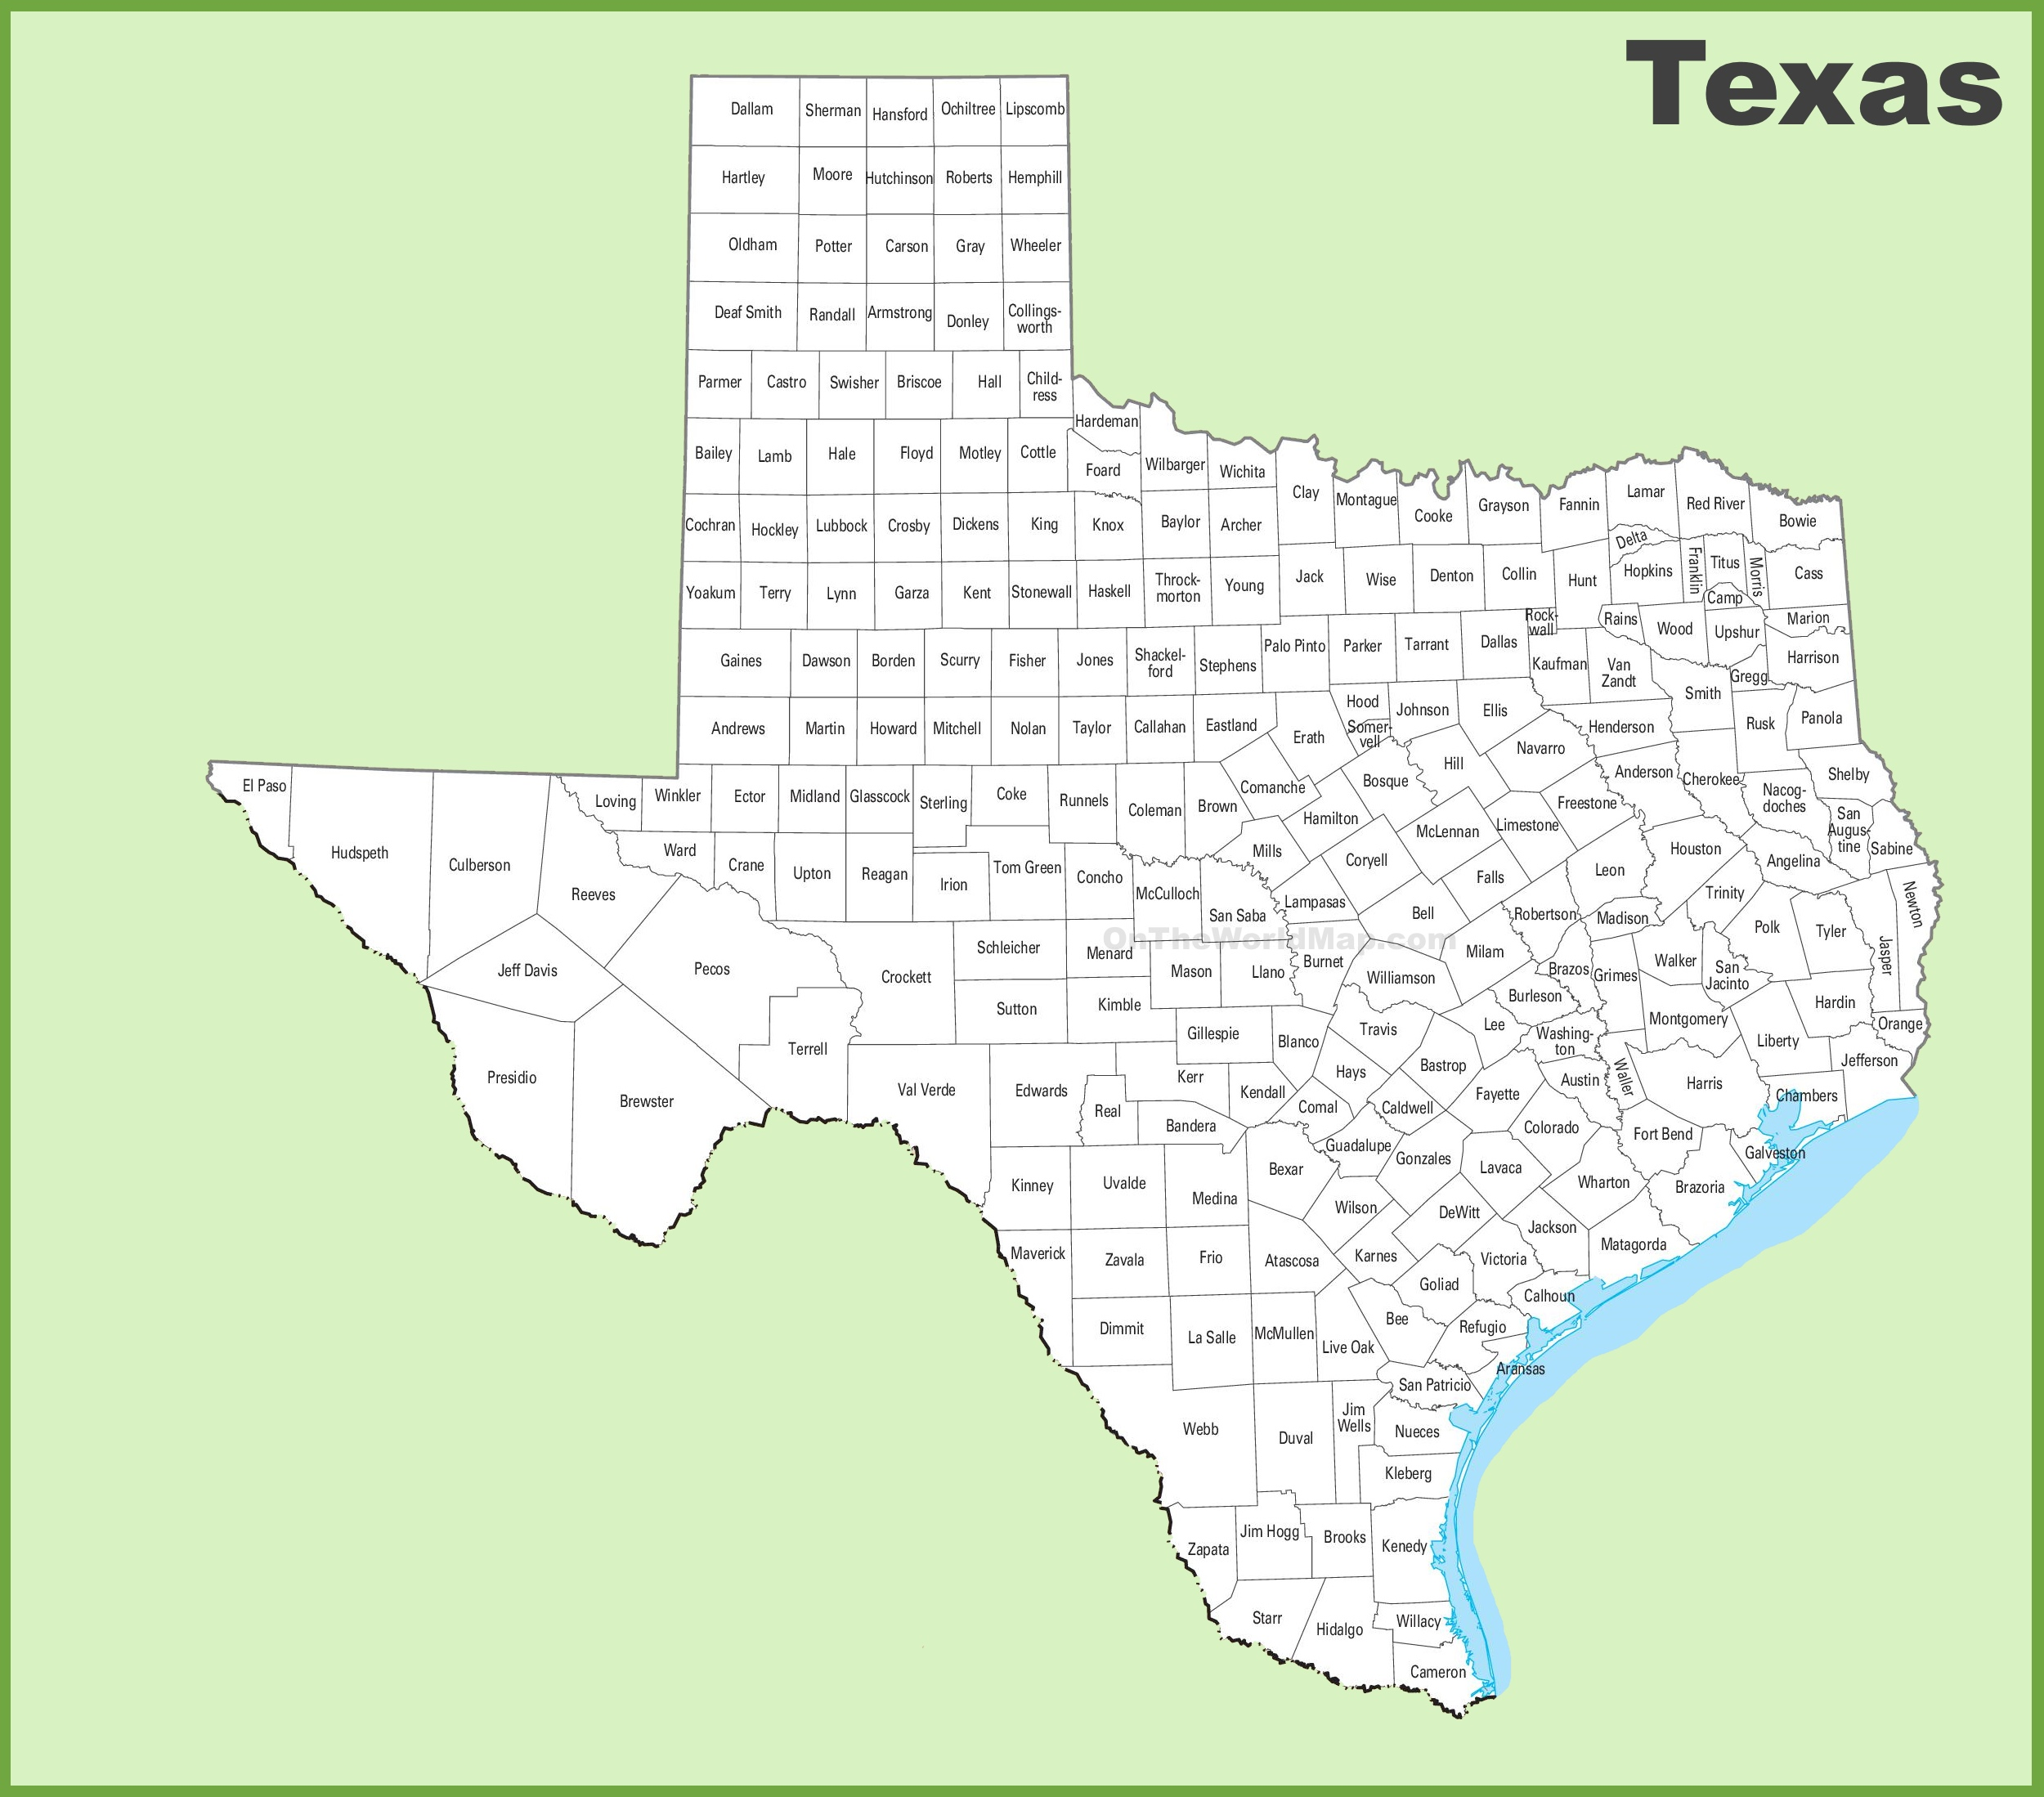 North Texas Map Of Counties Texas county map